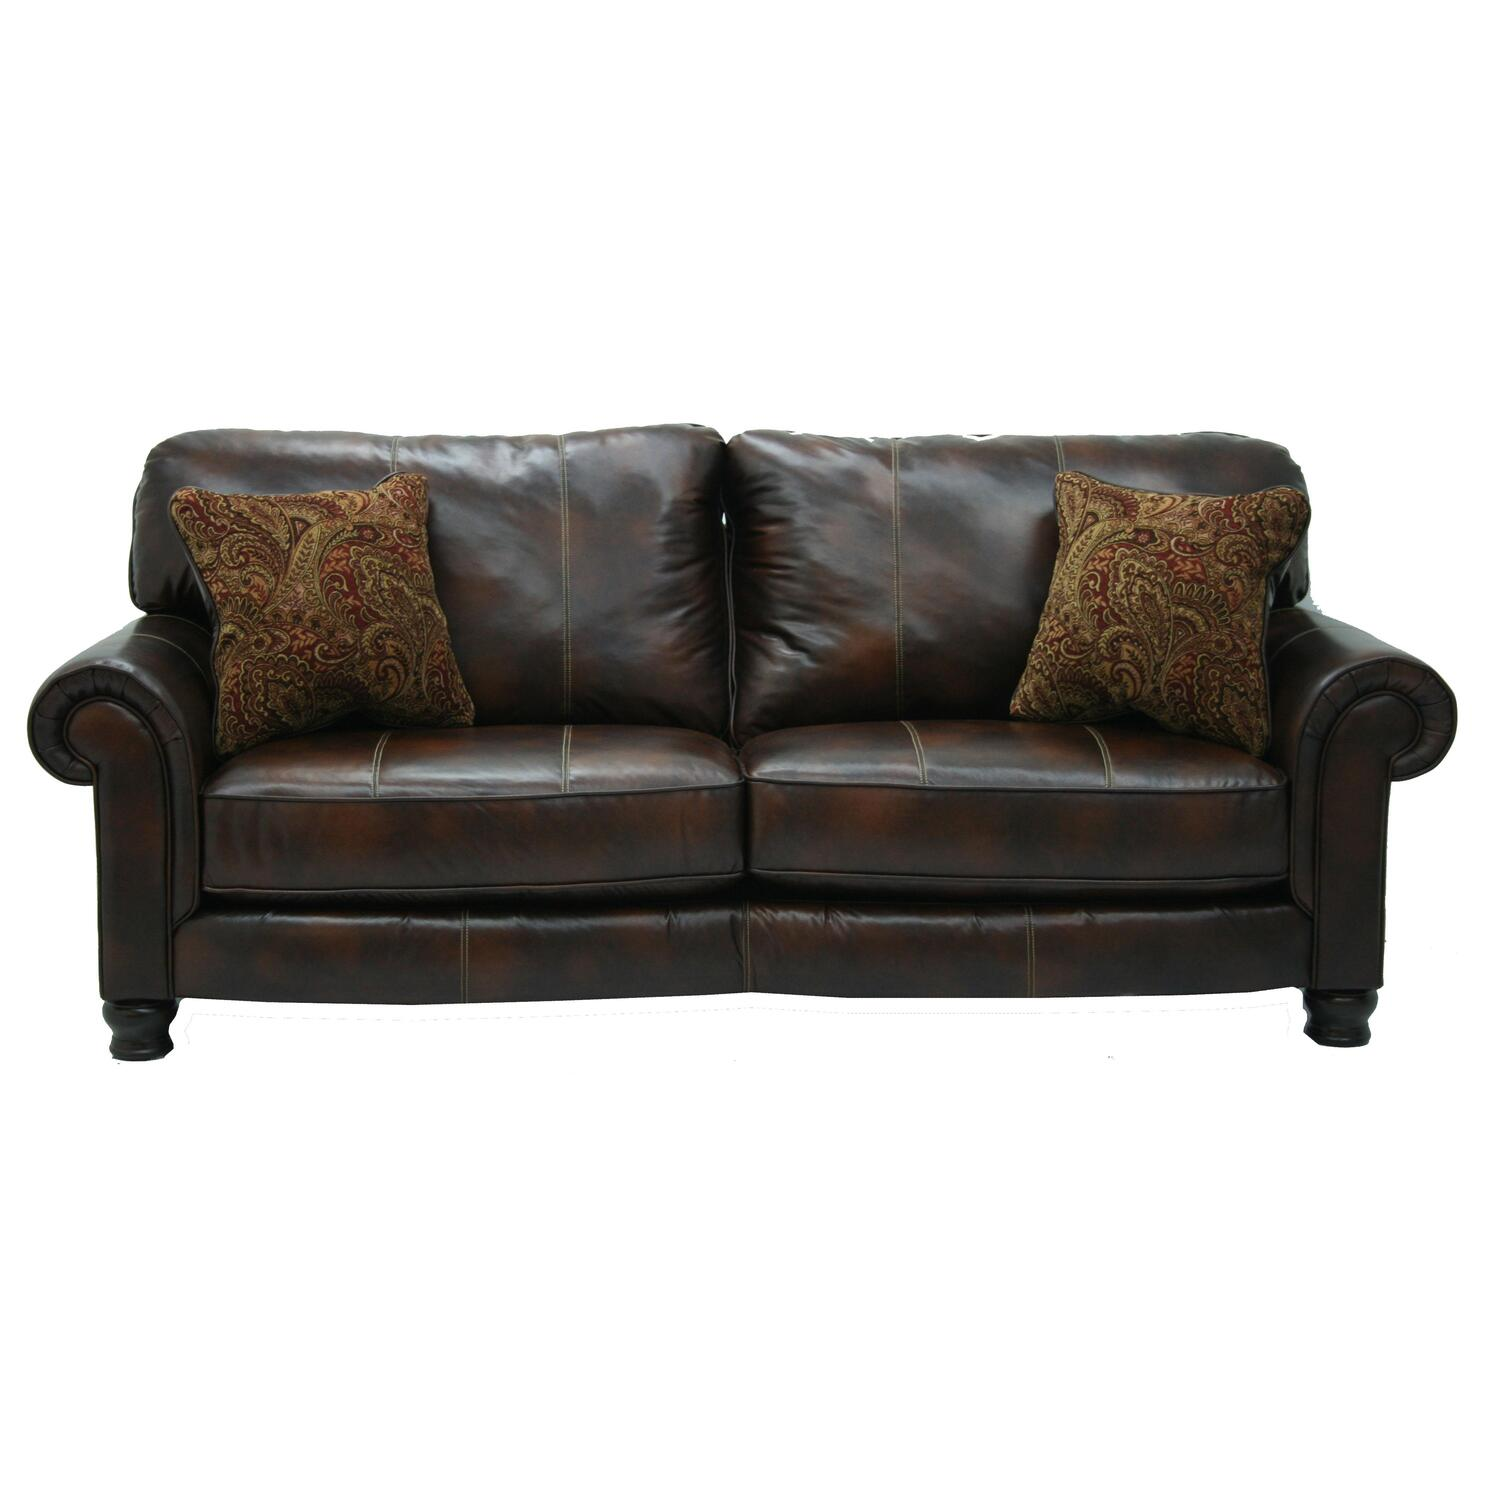 Jackson furniture oxford sofa by oj commerce 4372 032468 for Furniture oxford sectional sofa